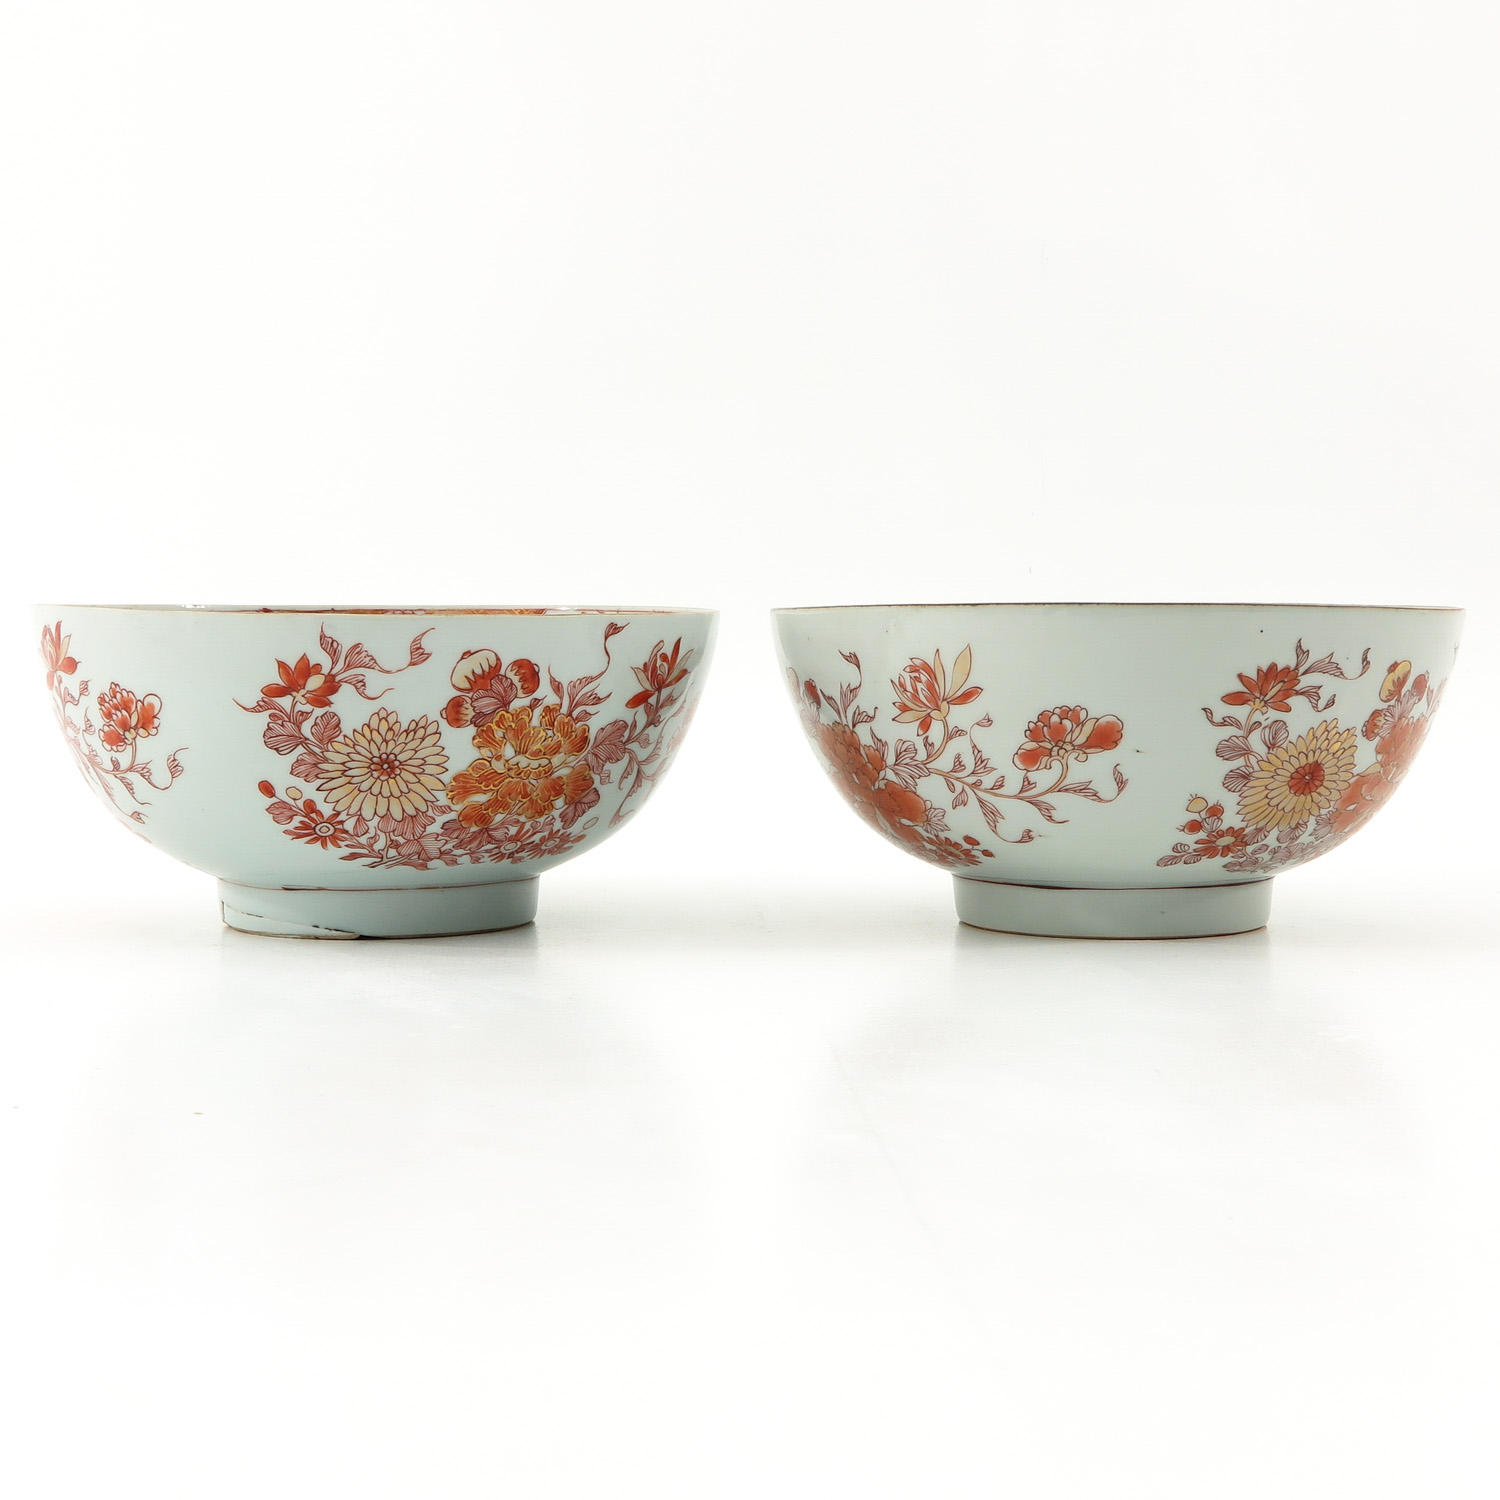 A Pair of Milk and Blood Decor Bowls - Image 2 of 9